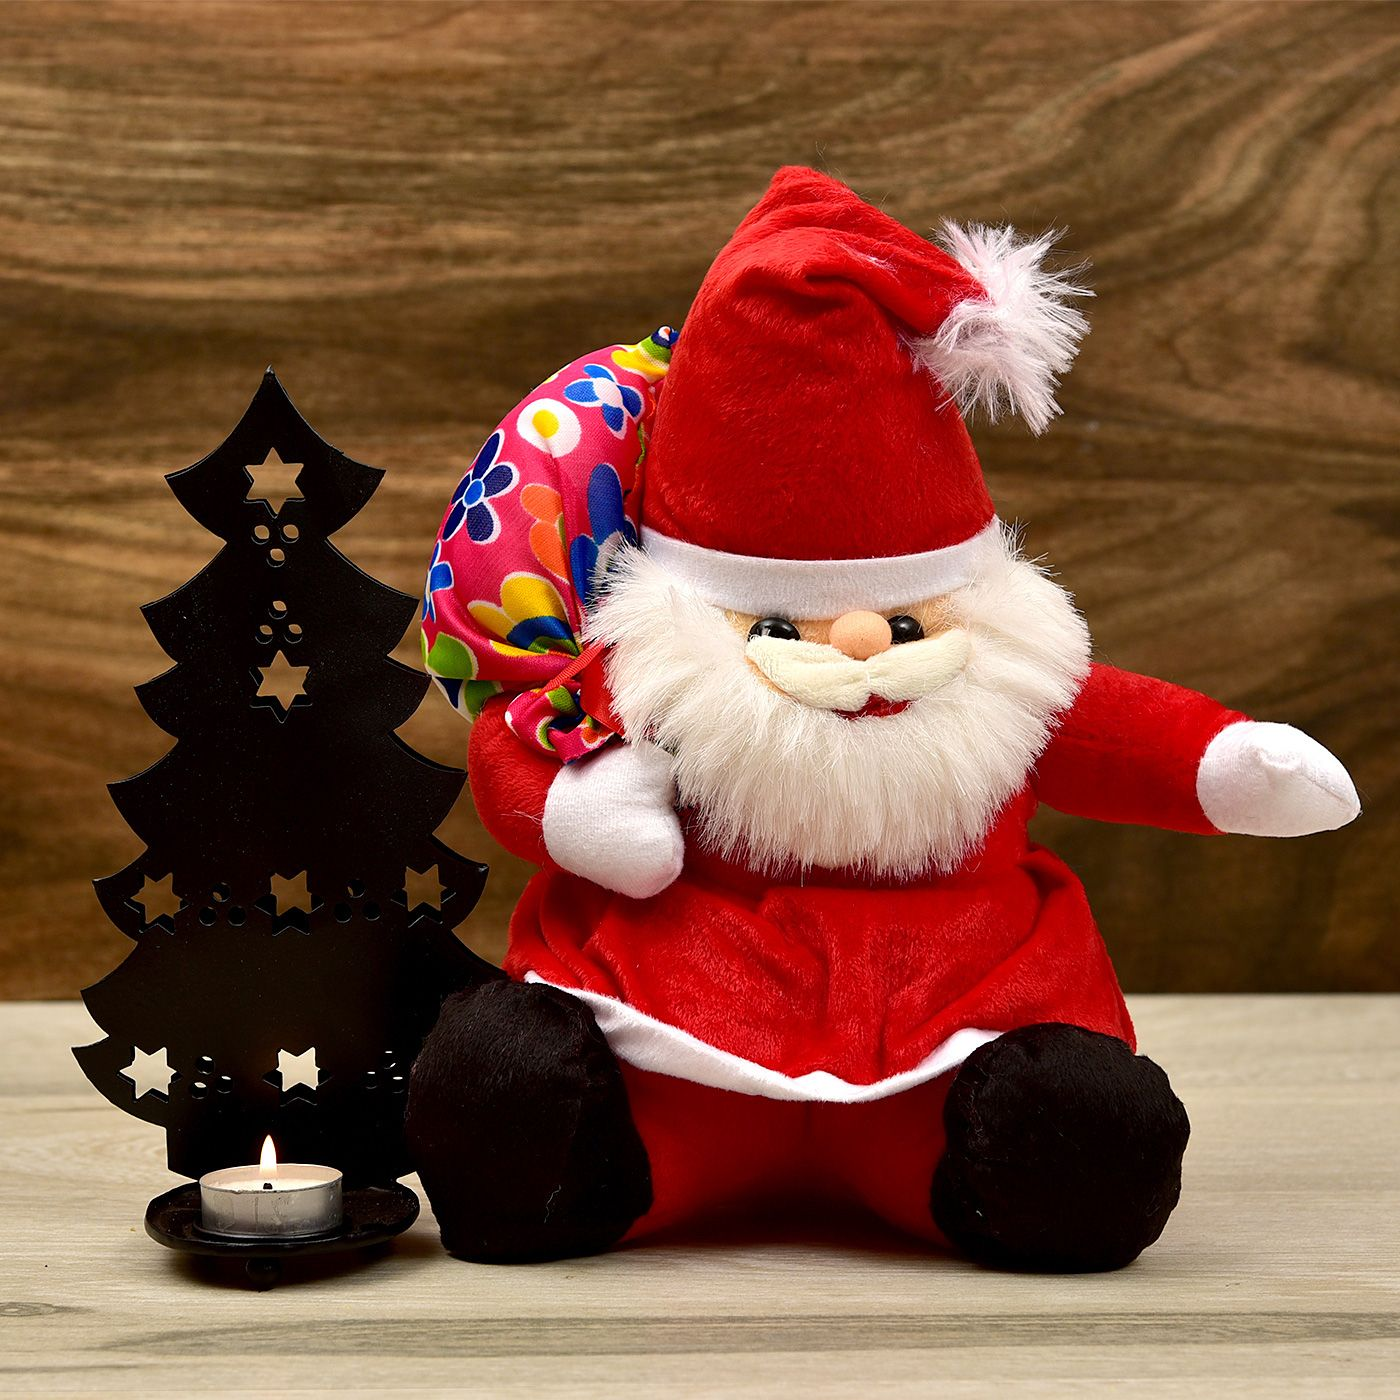 Cute Santa Teddy With Christmas Tree T Light Holder Gift Send Christmas Gifts Online L11076605 Igp Com Online Christmas Gifts Buy Christmas Gifts T Lights